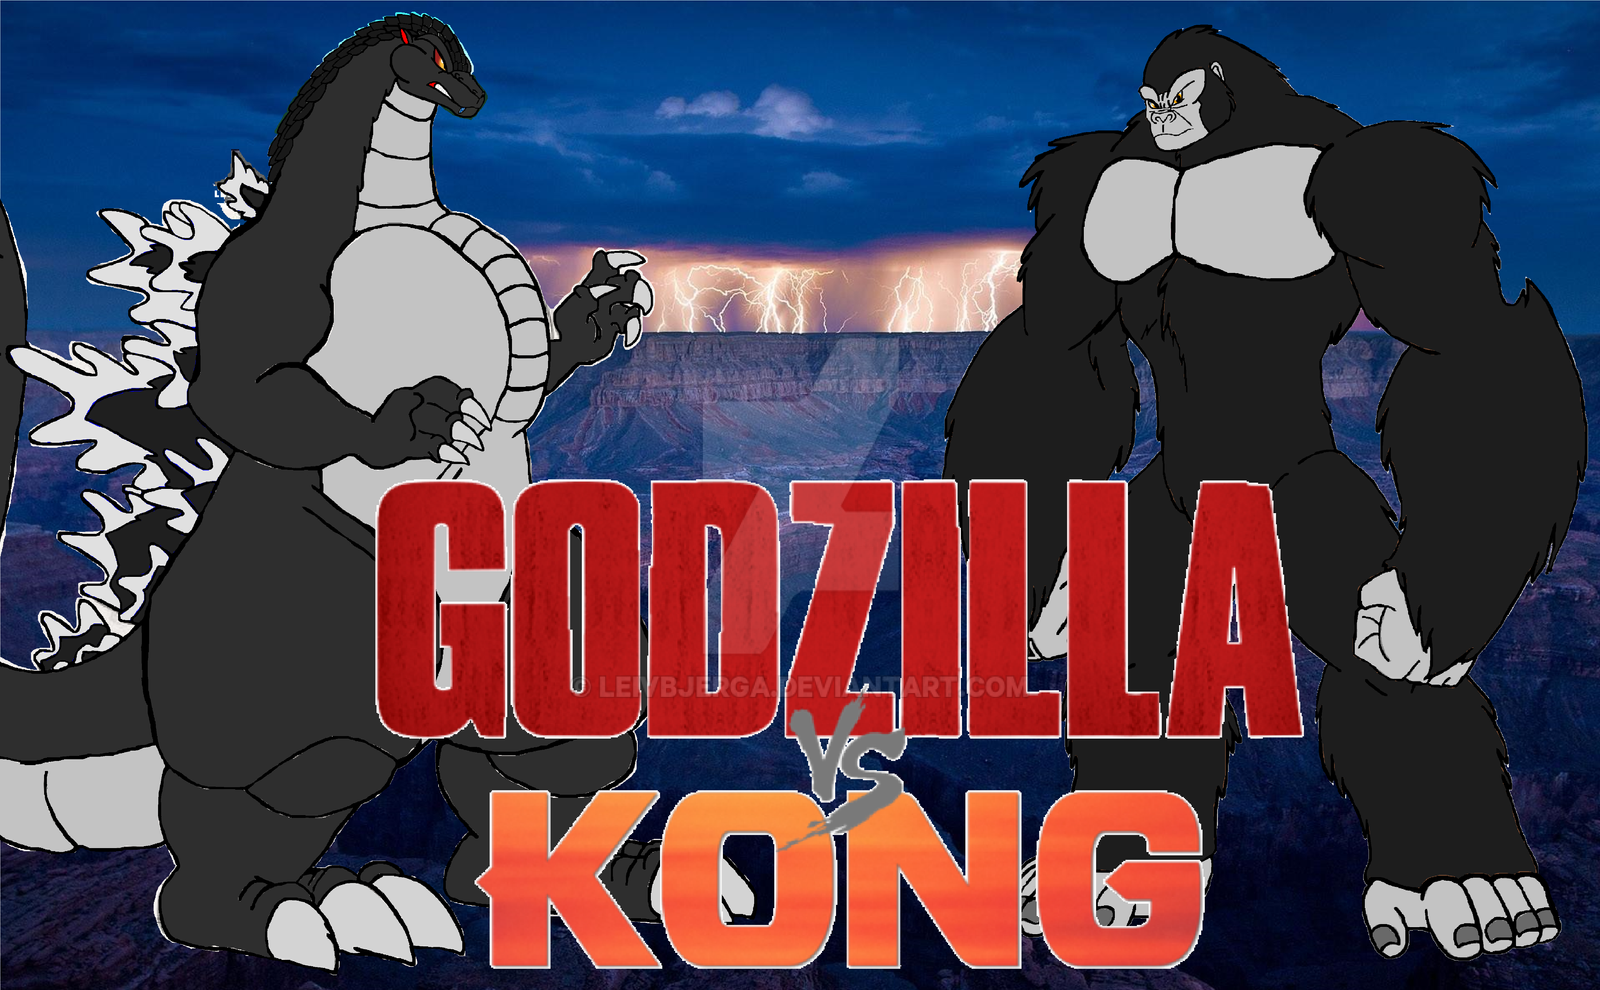 2020 Movie Posters: Godzilla Vs King Kong 2020 The Movie Poster By Leivbjerga